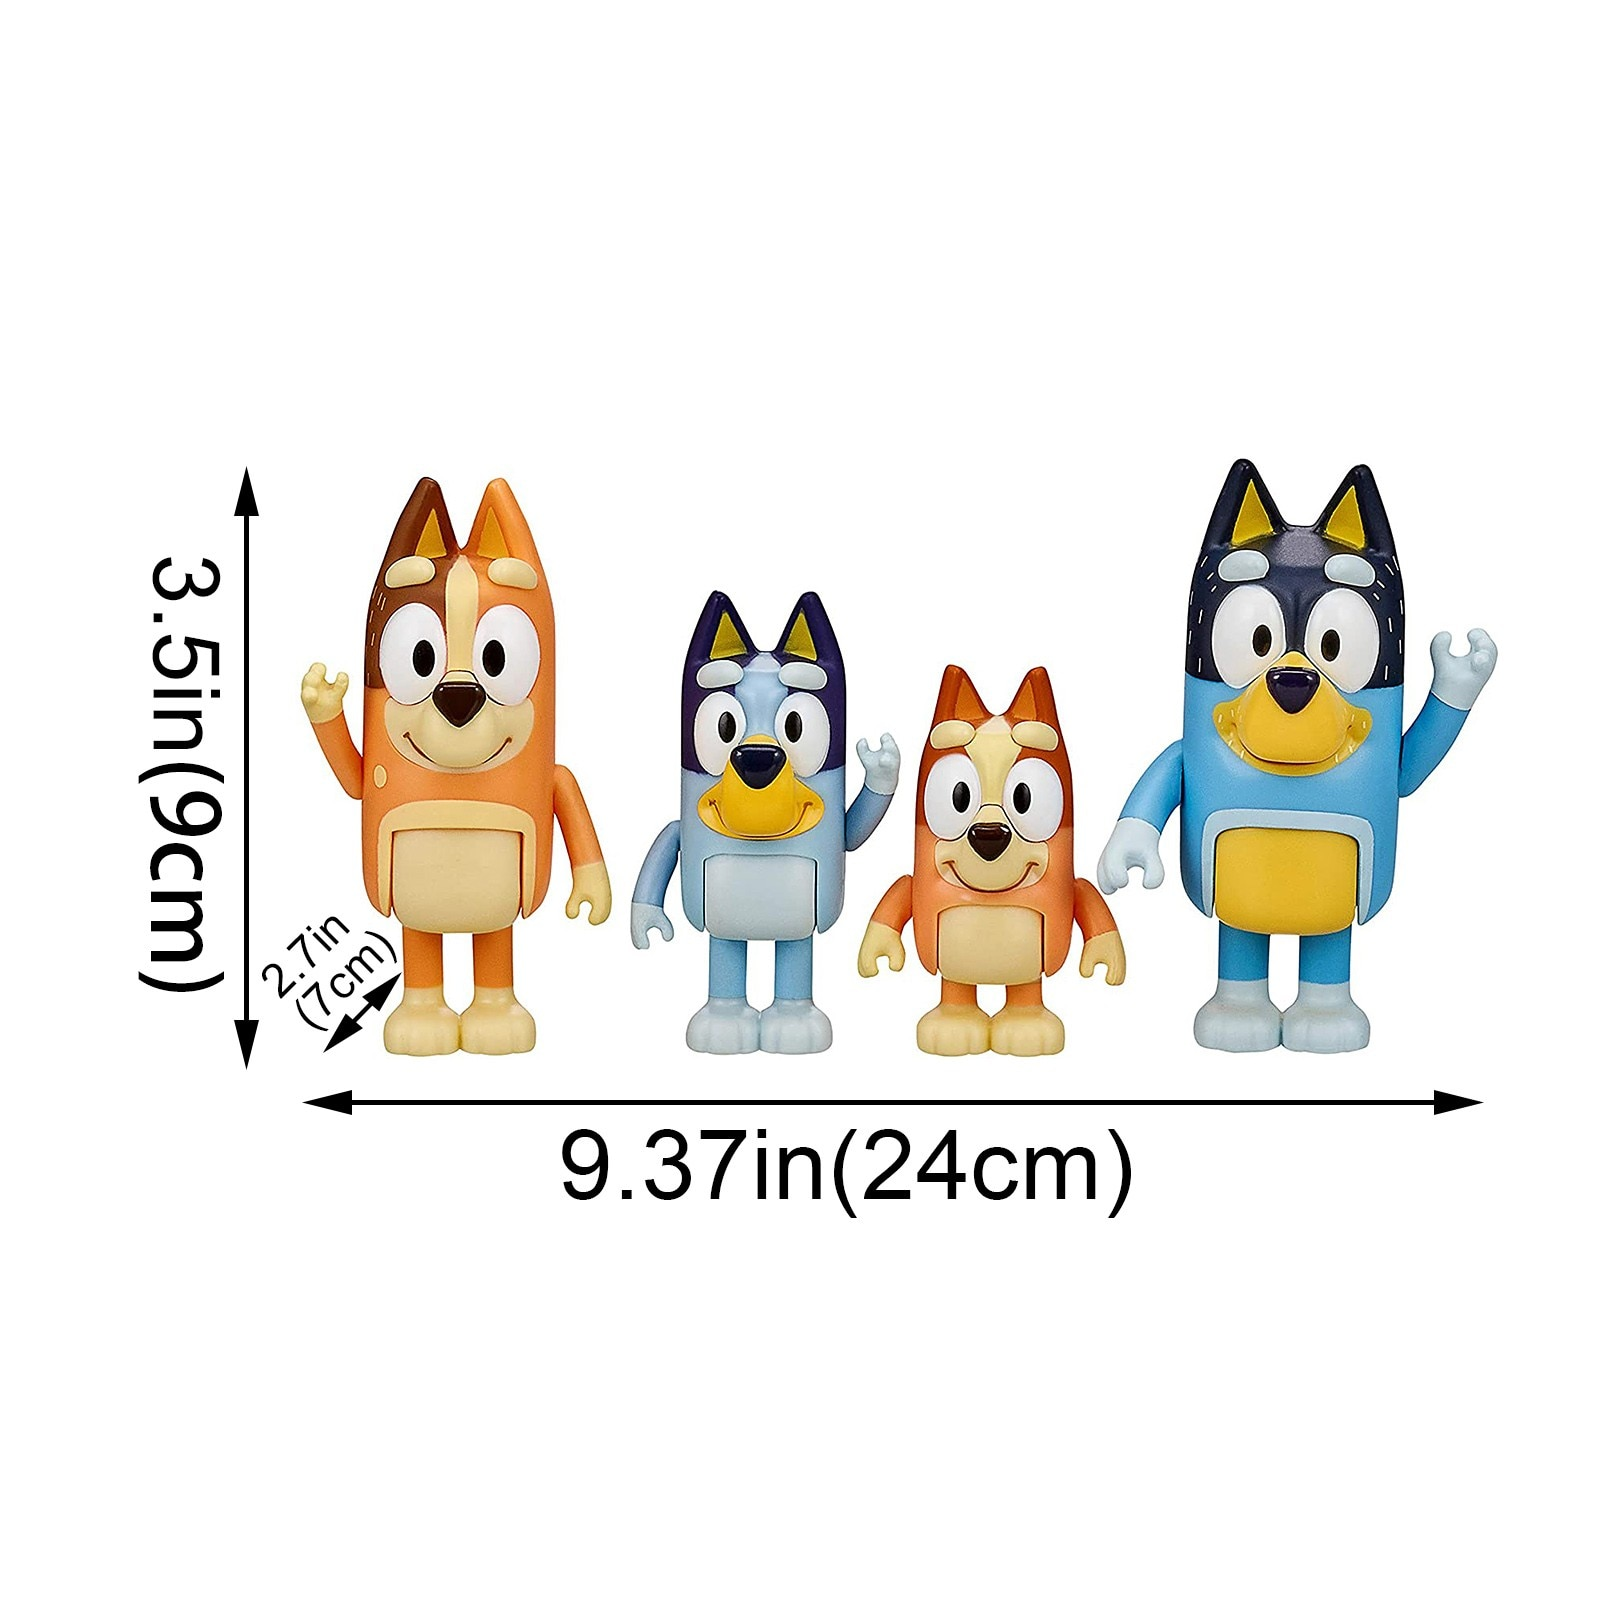 4PC Bluey Family Toy Pack Figure Made A Multi-Colored Toy Gift For Their Children Bluey Toys By Hand